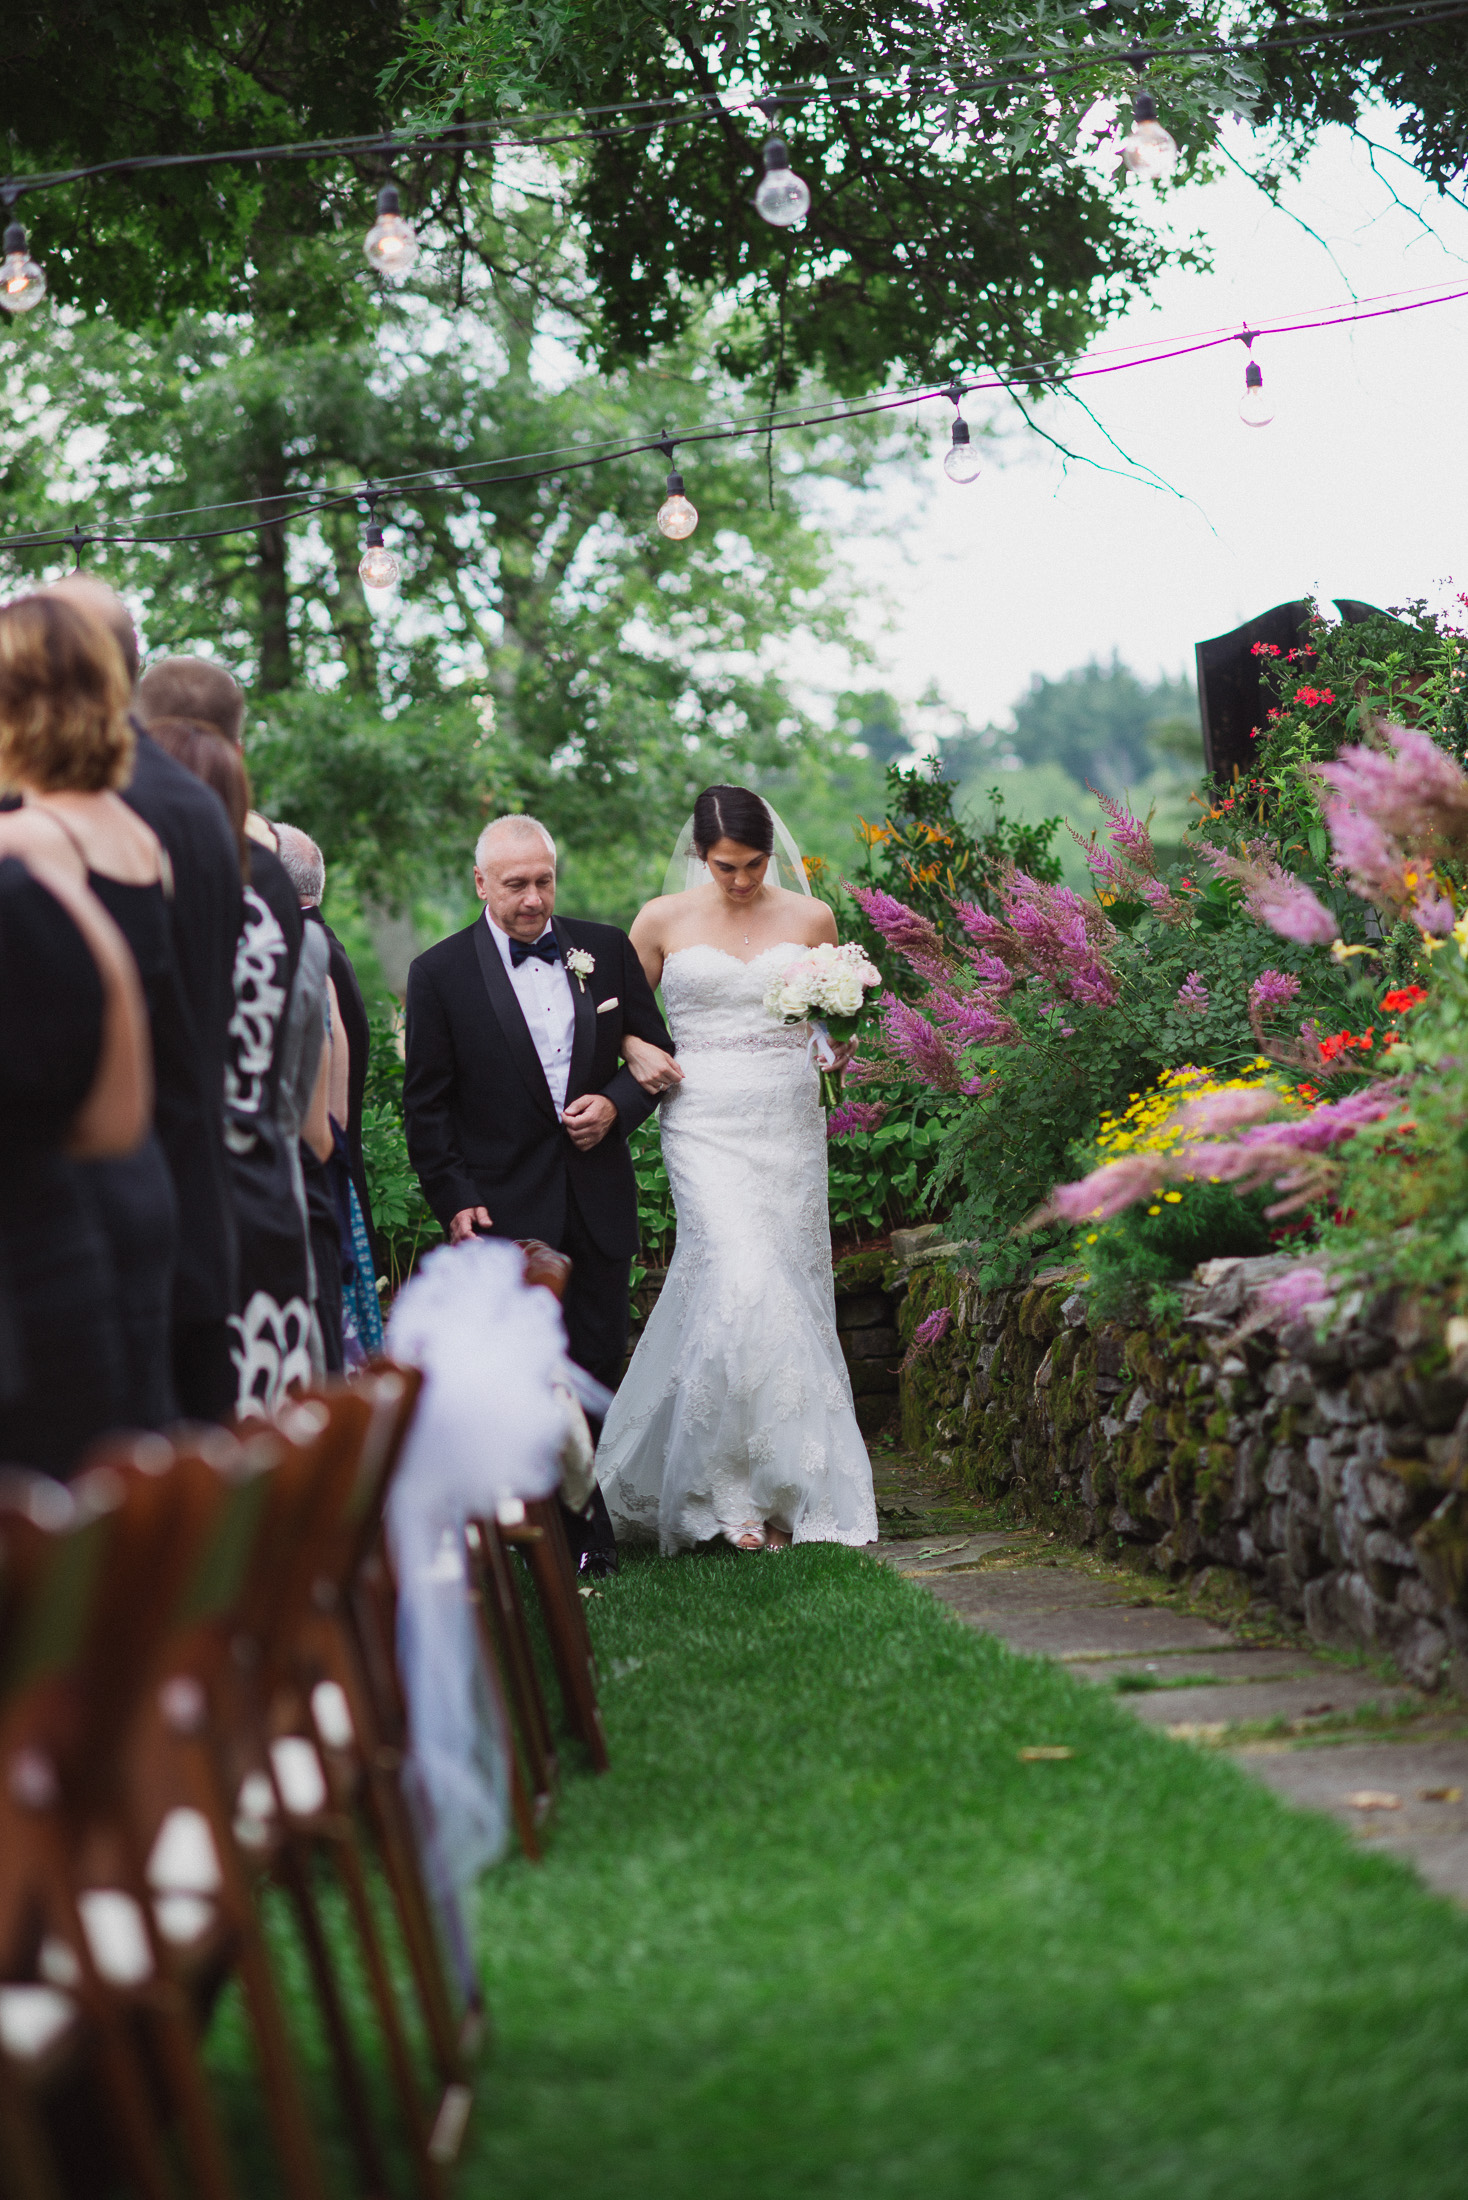 NH Wedding Photography: dad walking with bride